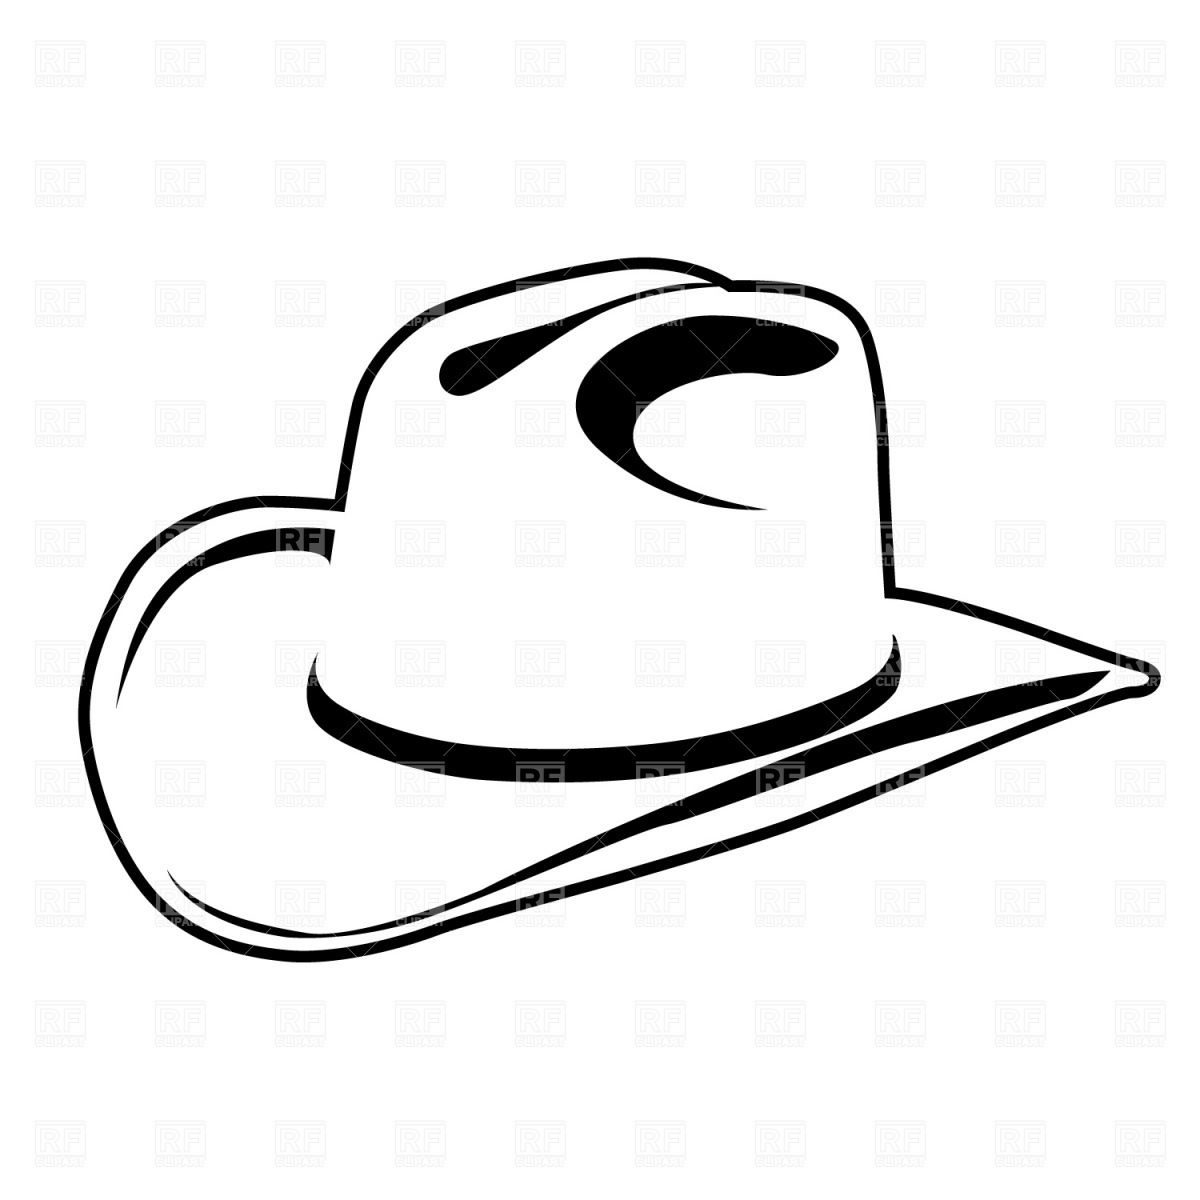 1200x1200 Simple Cowboy Hat Vector Image Vector Artwork Of Beauty, Fashion